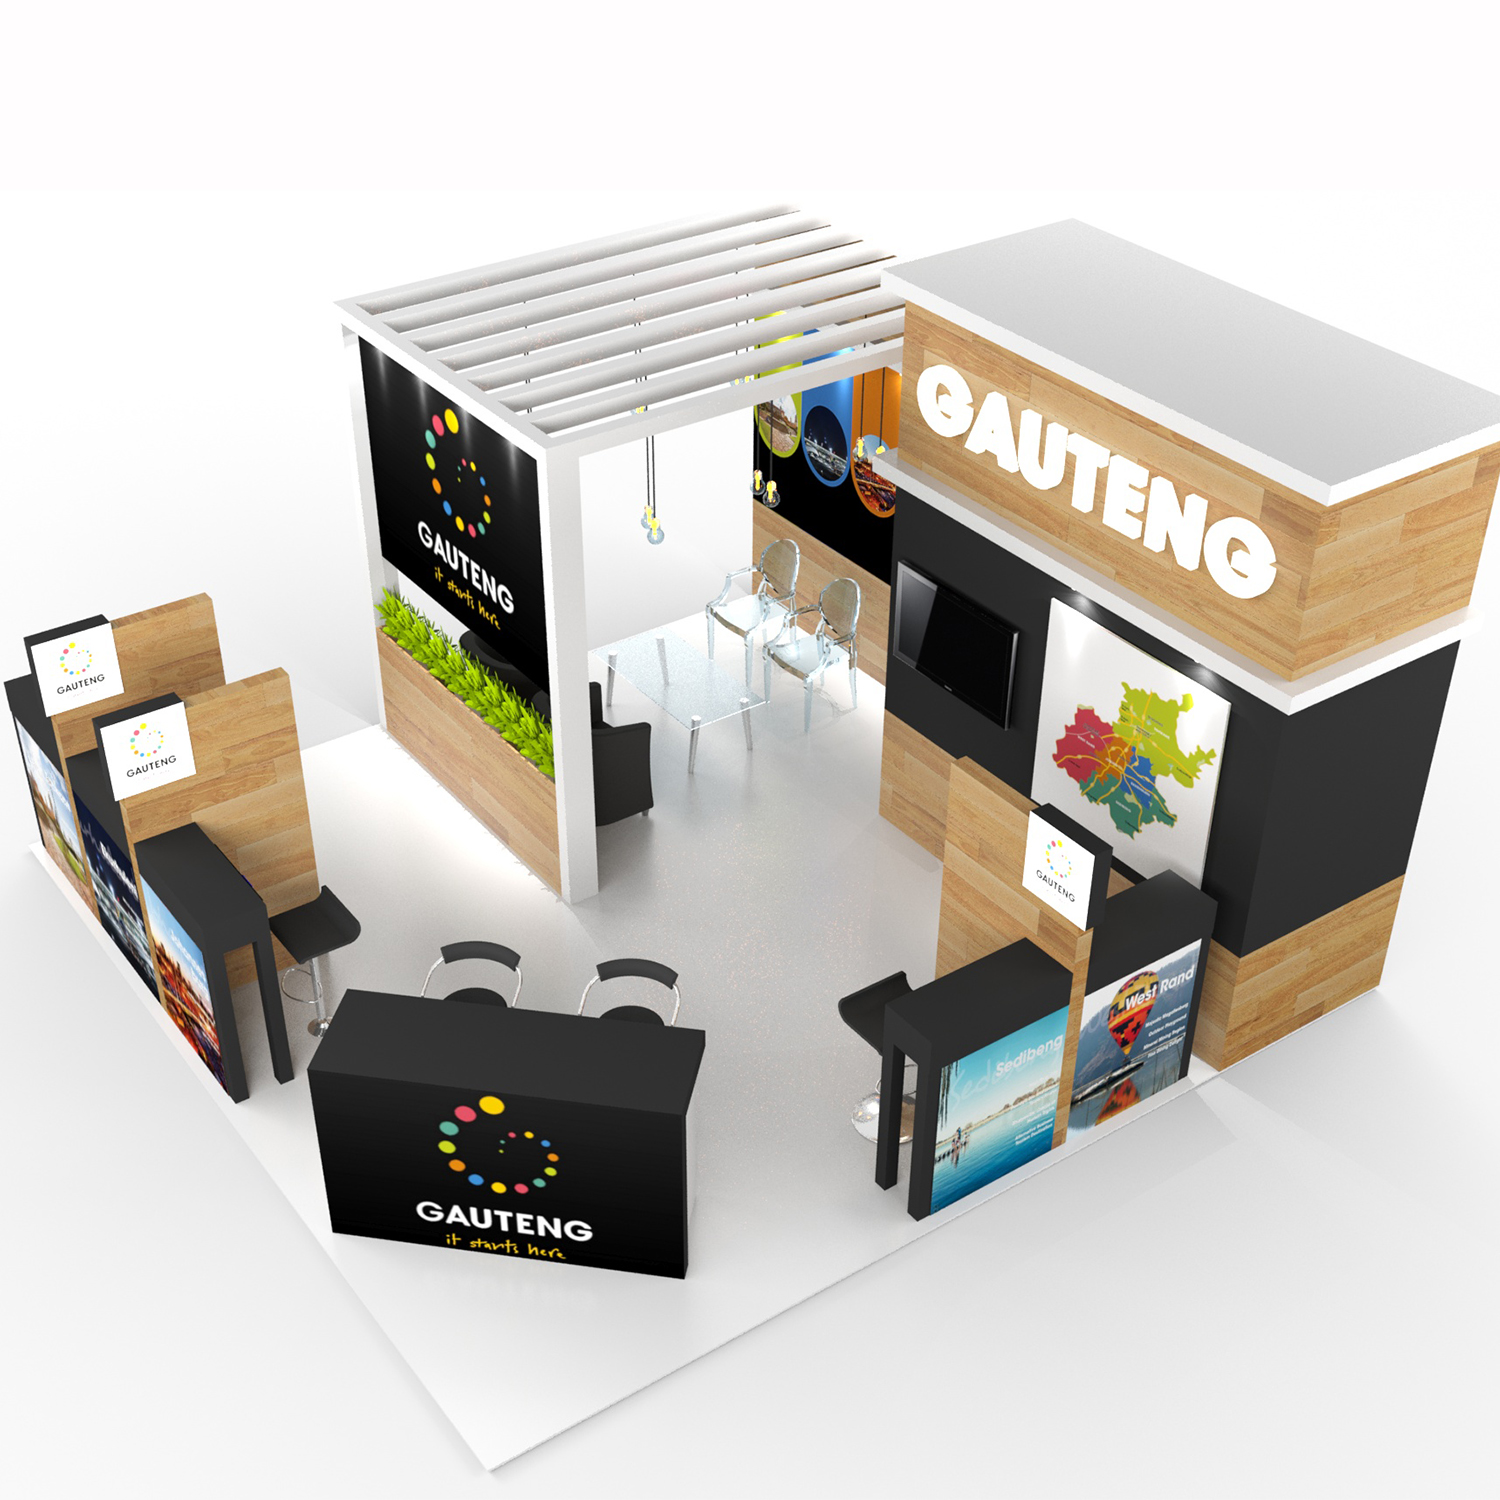 SugarLab Creative - Custom ExhiSugarLab Creative - Custom Exhibition Stand Design for Gauteng Tourism Authoritybition Stand Design for Gauteng Tourism Authority